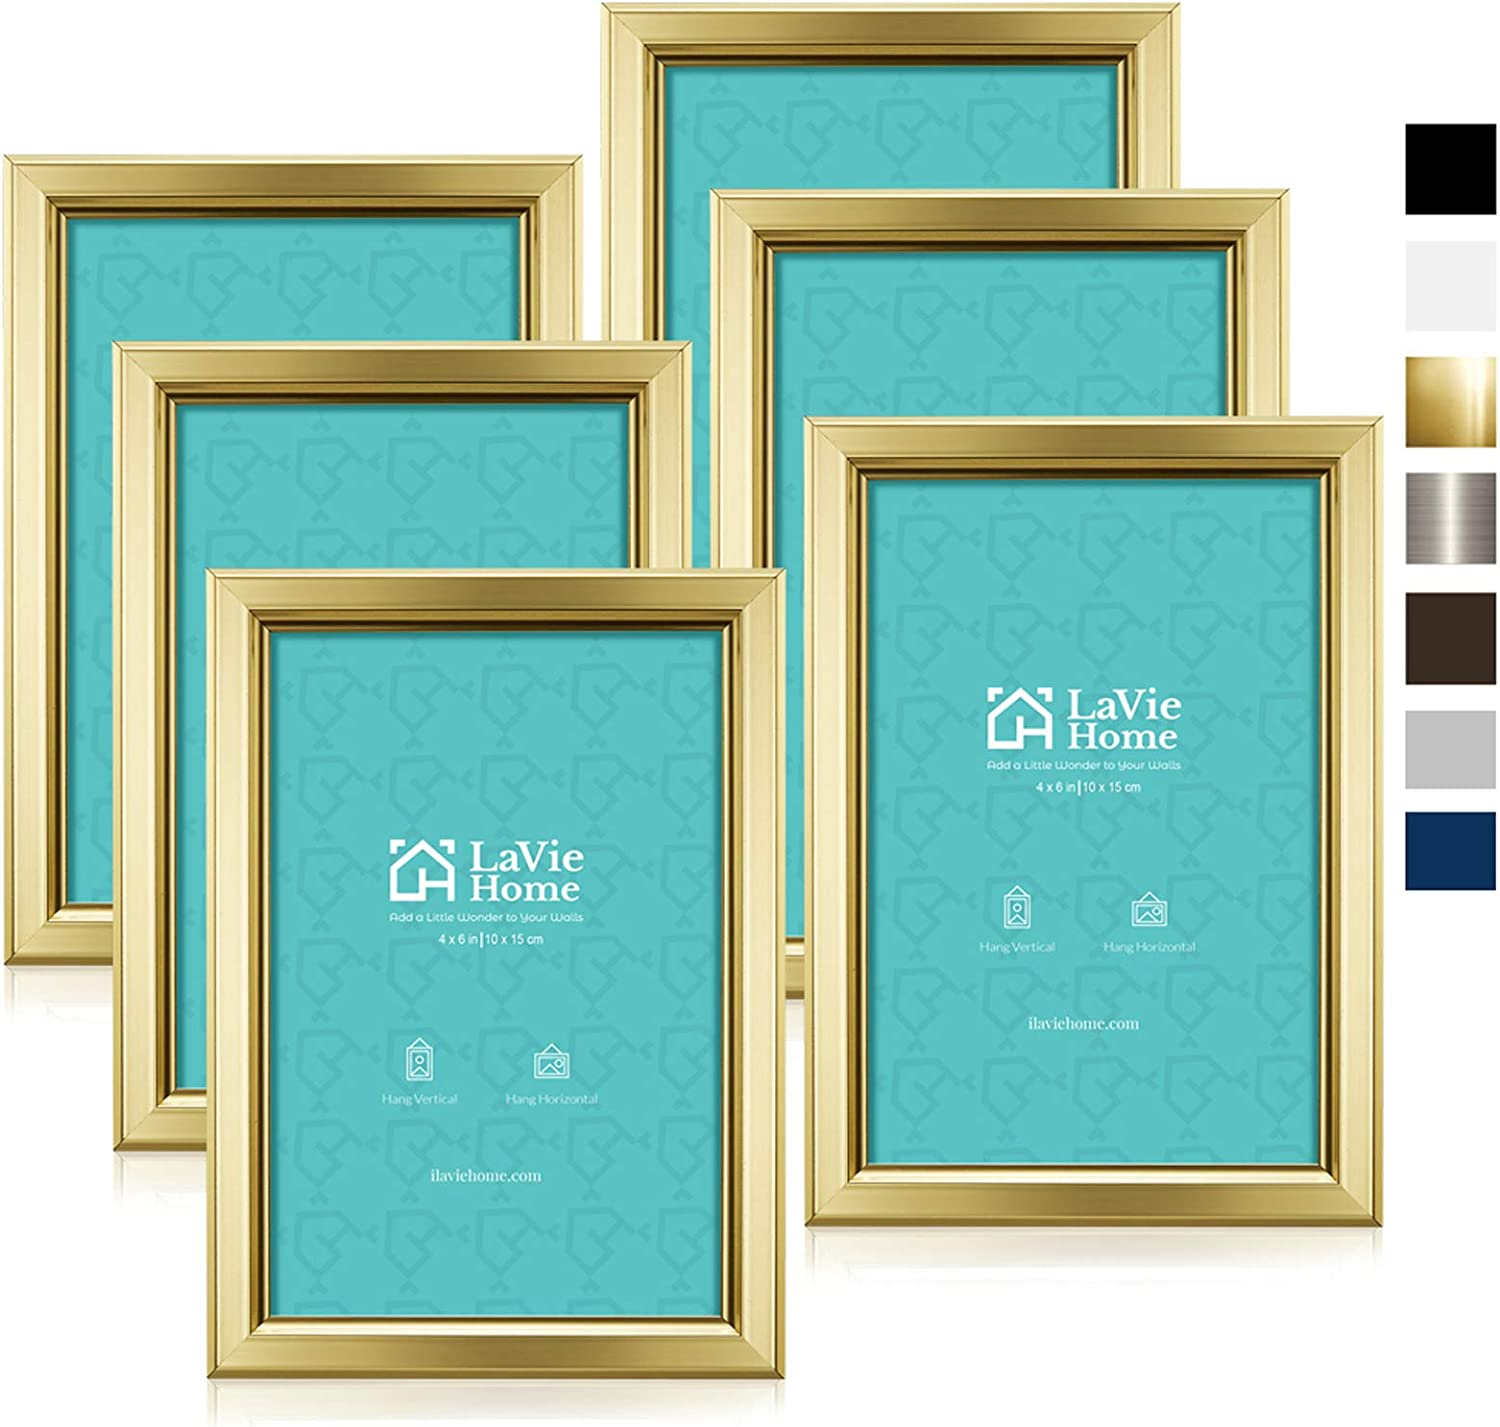 LaVie Home 4x6 Picture Frames (6 Pack, Gold) Simple Designed Photo Frame with High Definition Glass for Wall Mount & Table Top Display, Set of 6 Classic Collection